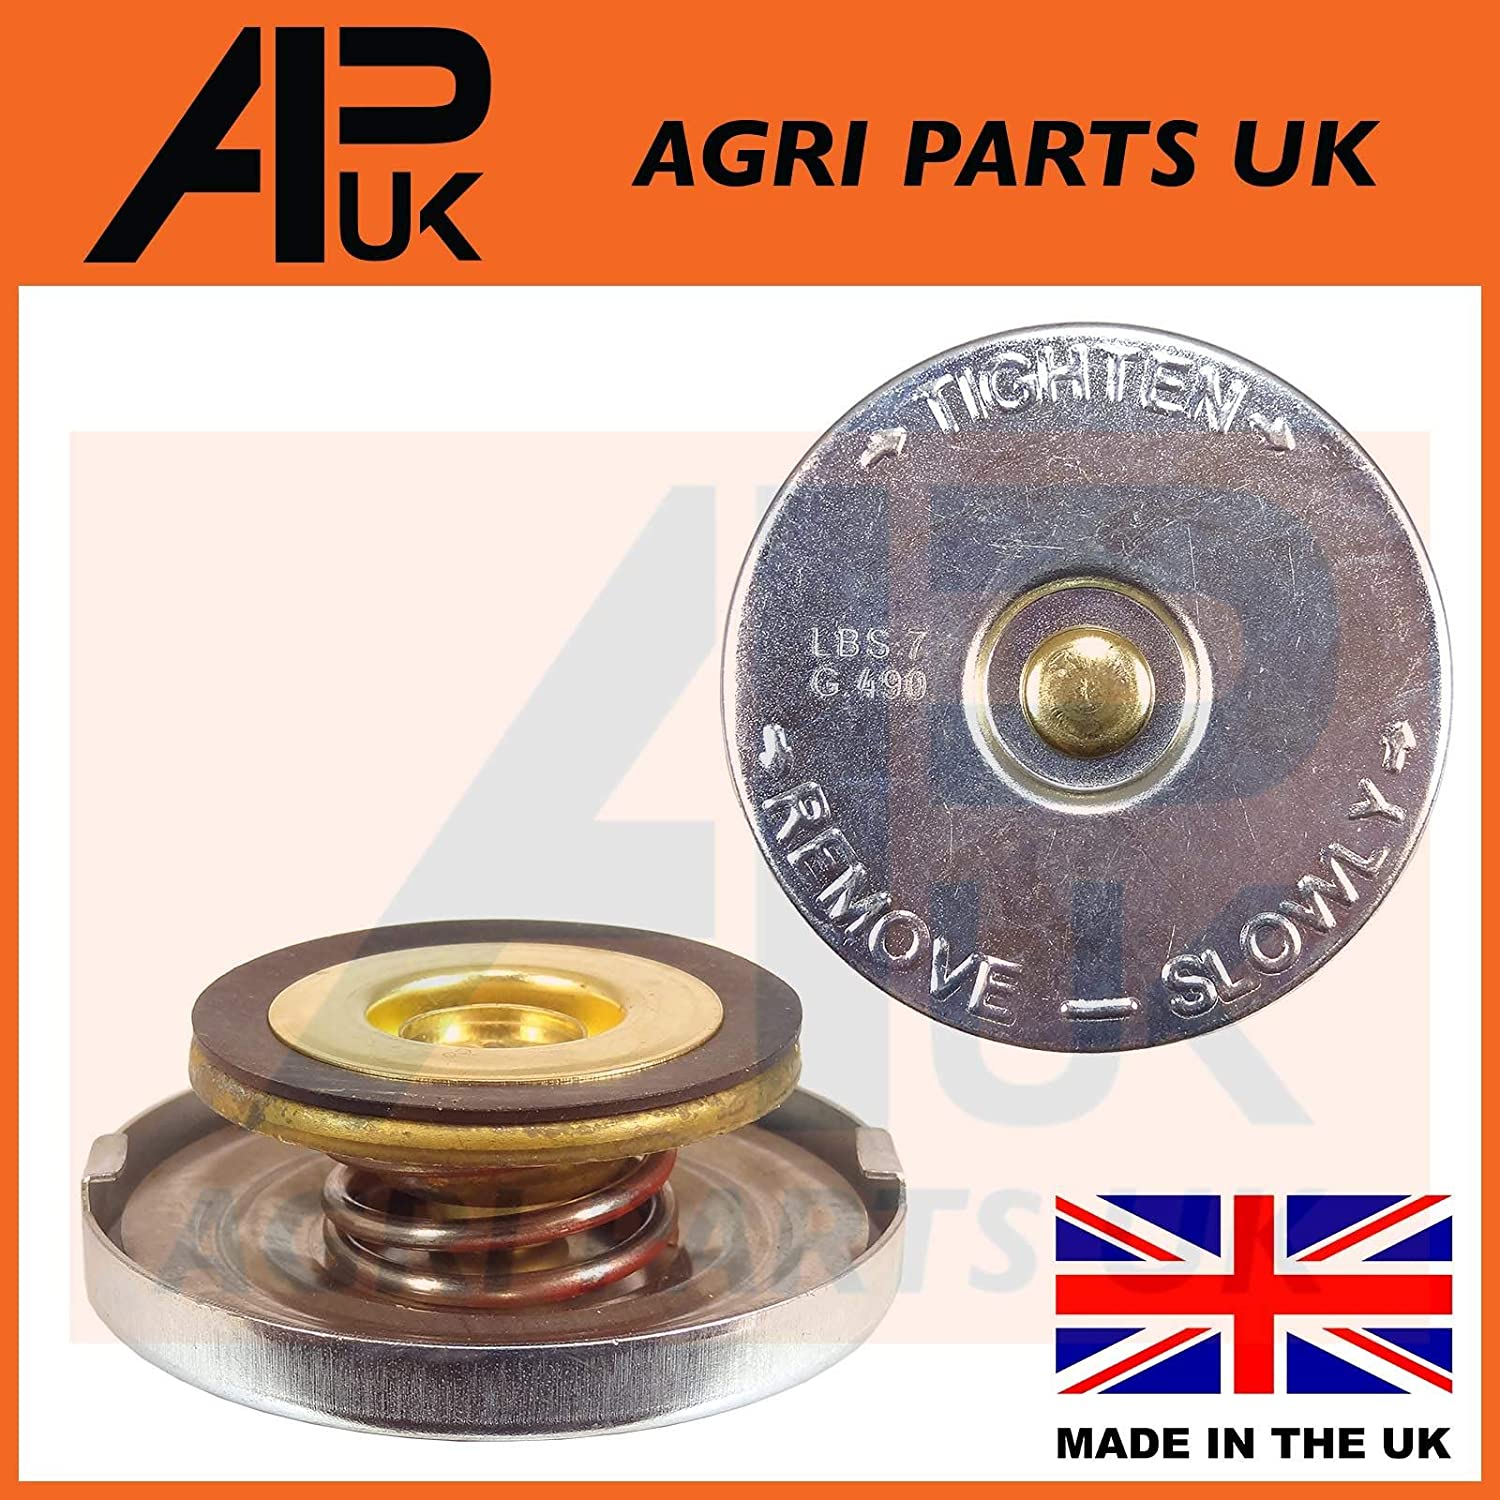 APUK Case International Harvester IH 384 434 444 250 275 414 Tractor Radiator Cap Agri Parts UK Ltd